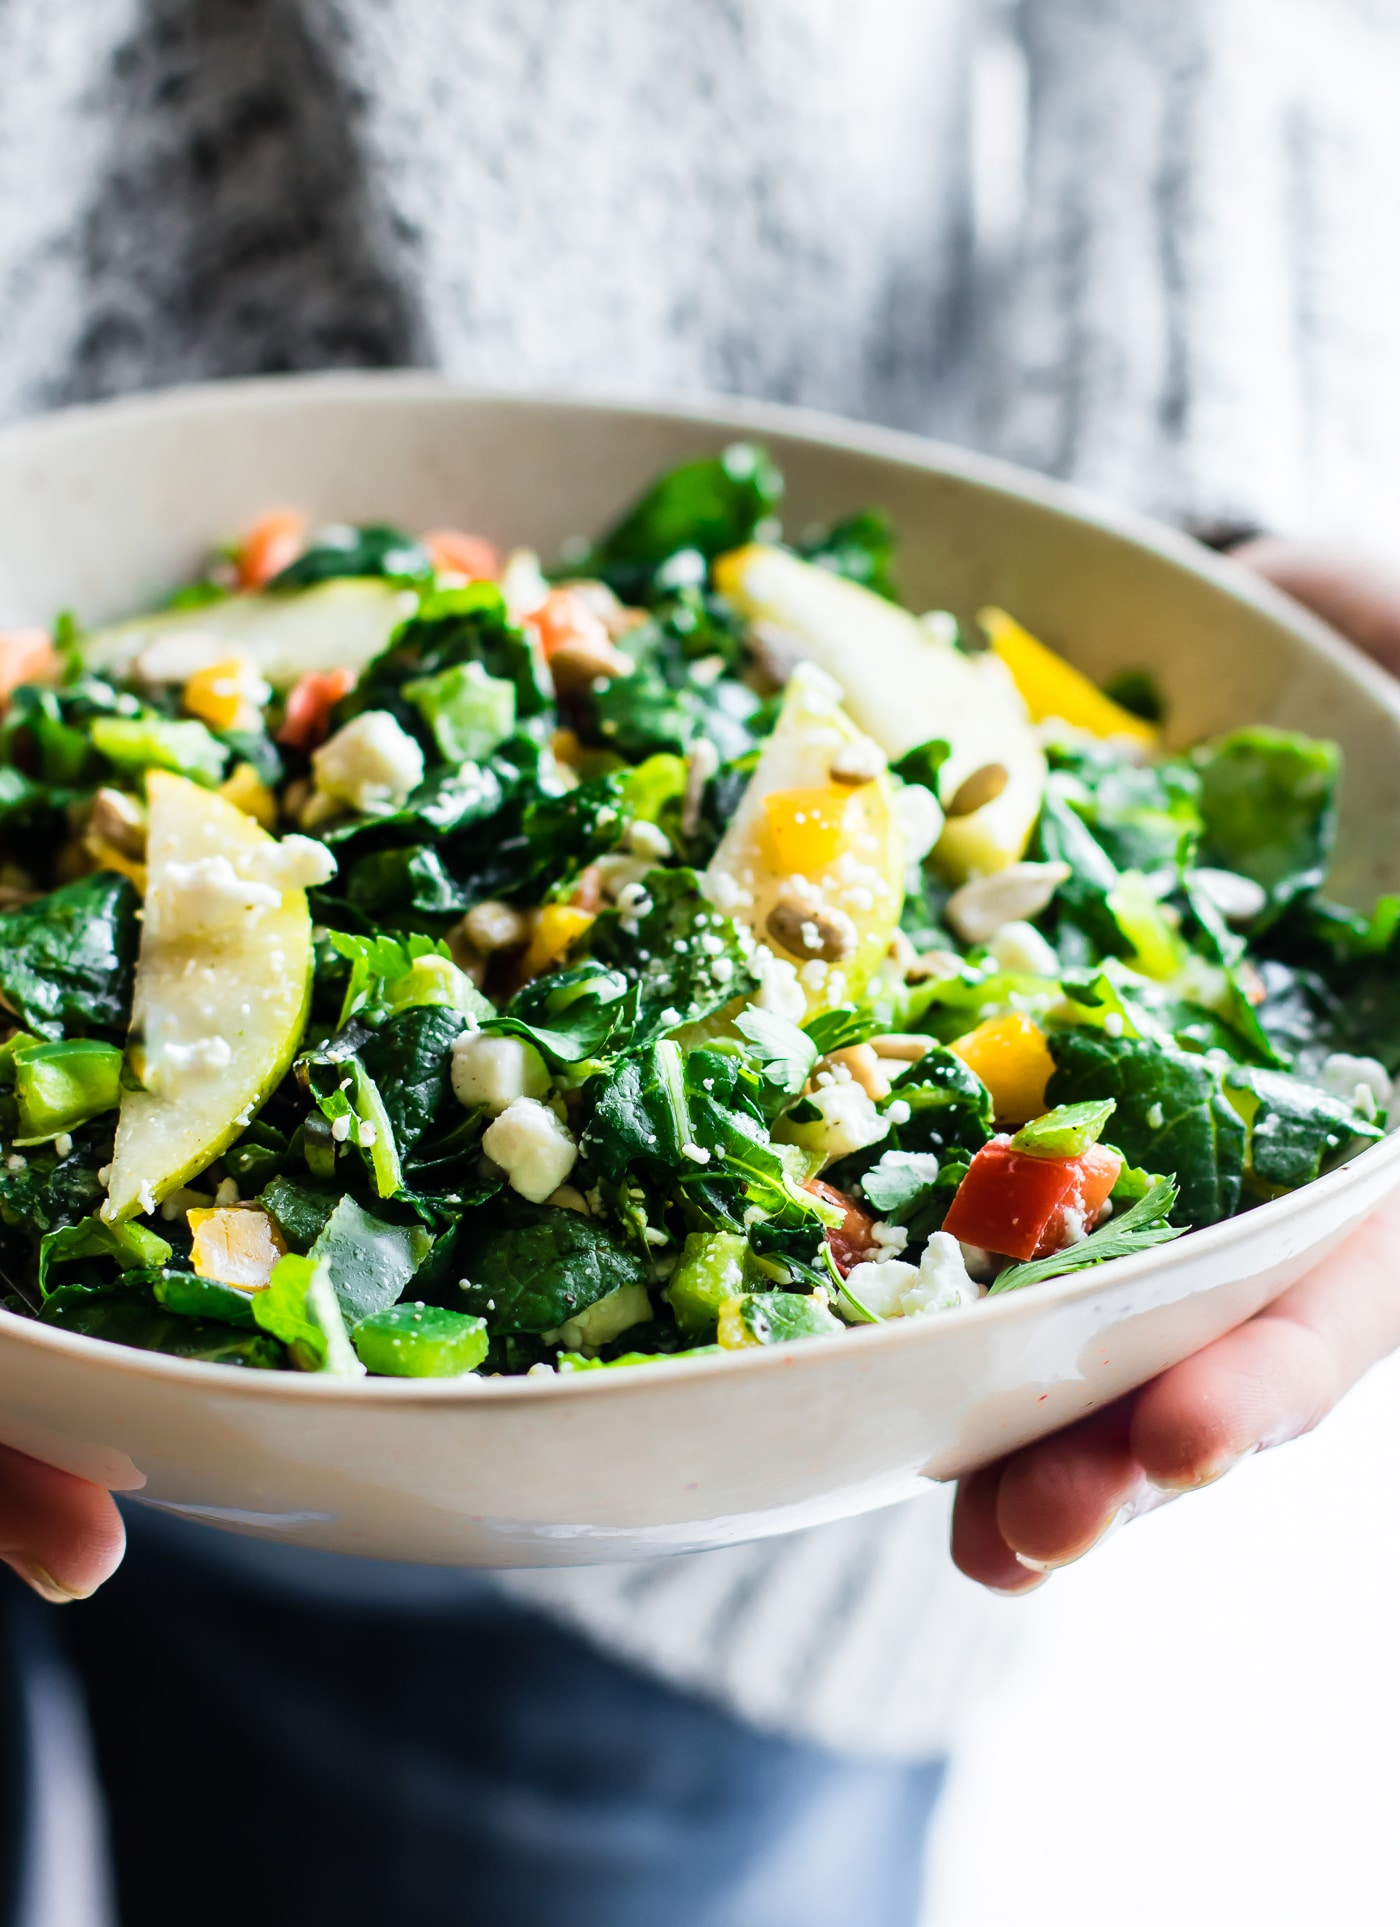 A satisfying ZIPPY kale salad packed with delicious ingredients and a light honey dressing. Crisp pear, seasonal kale, goat cheese, and more! Just like your favorite restaurant style salad, but easy to make make fresh at home all in one bowl. Just toss and go! Great as a healthy vegetarian main or a side salad for any dish!